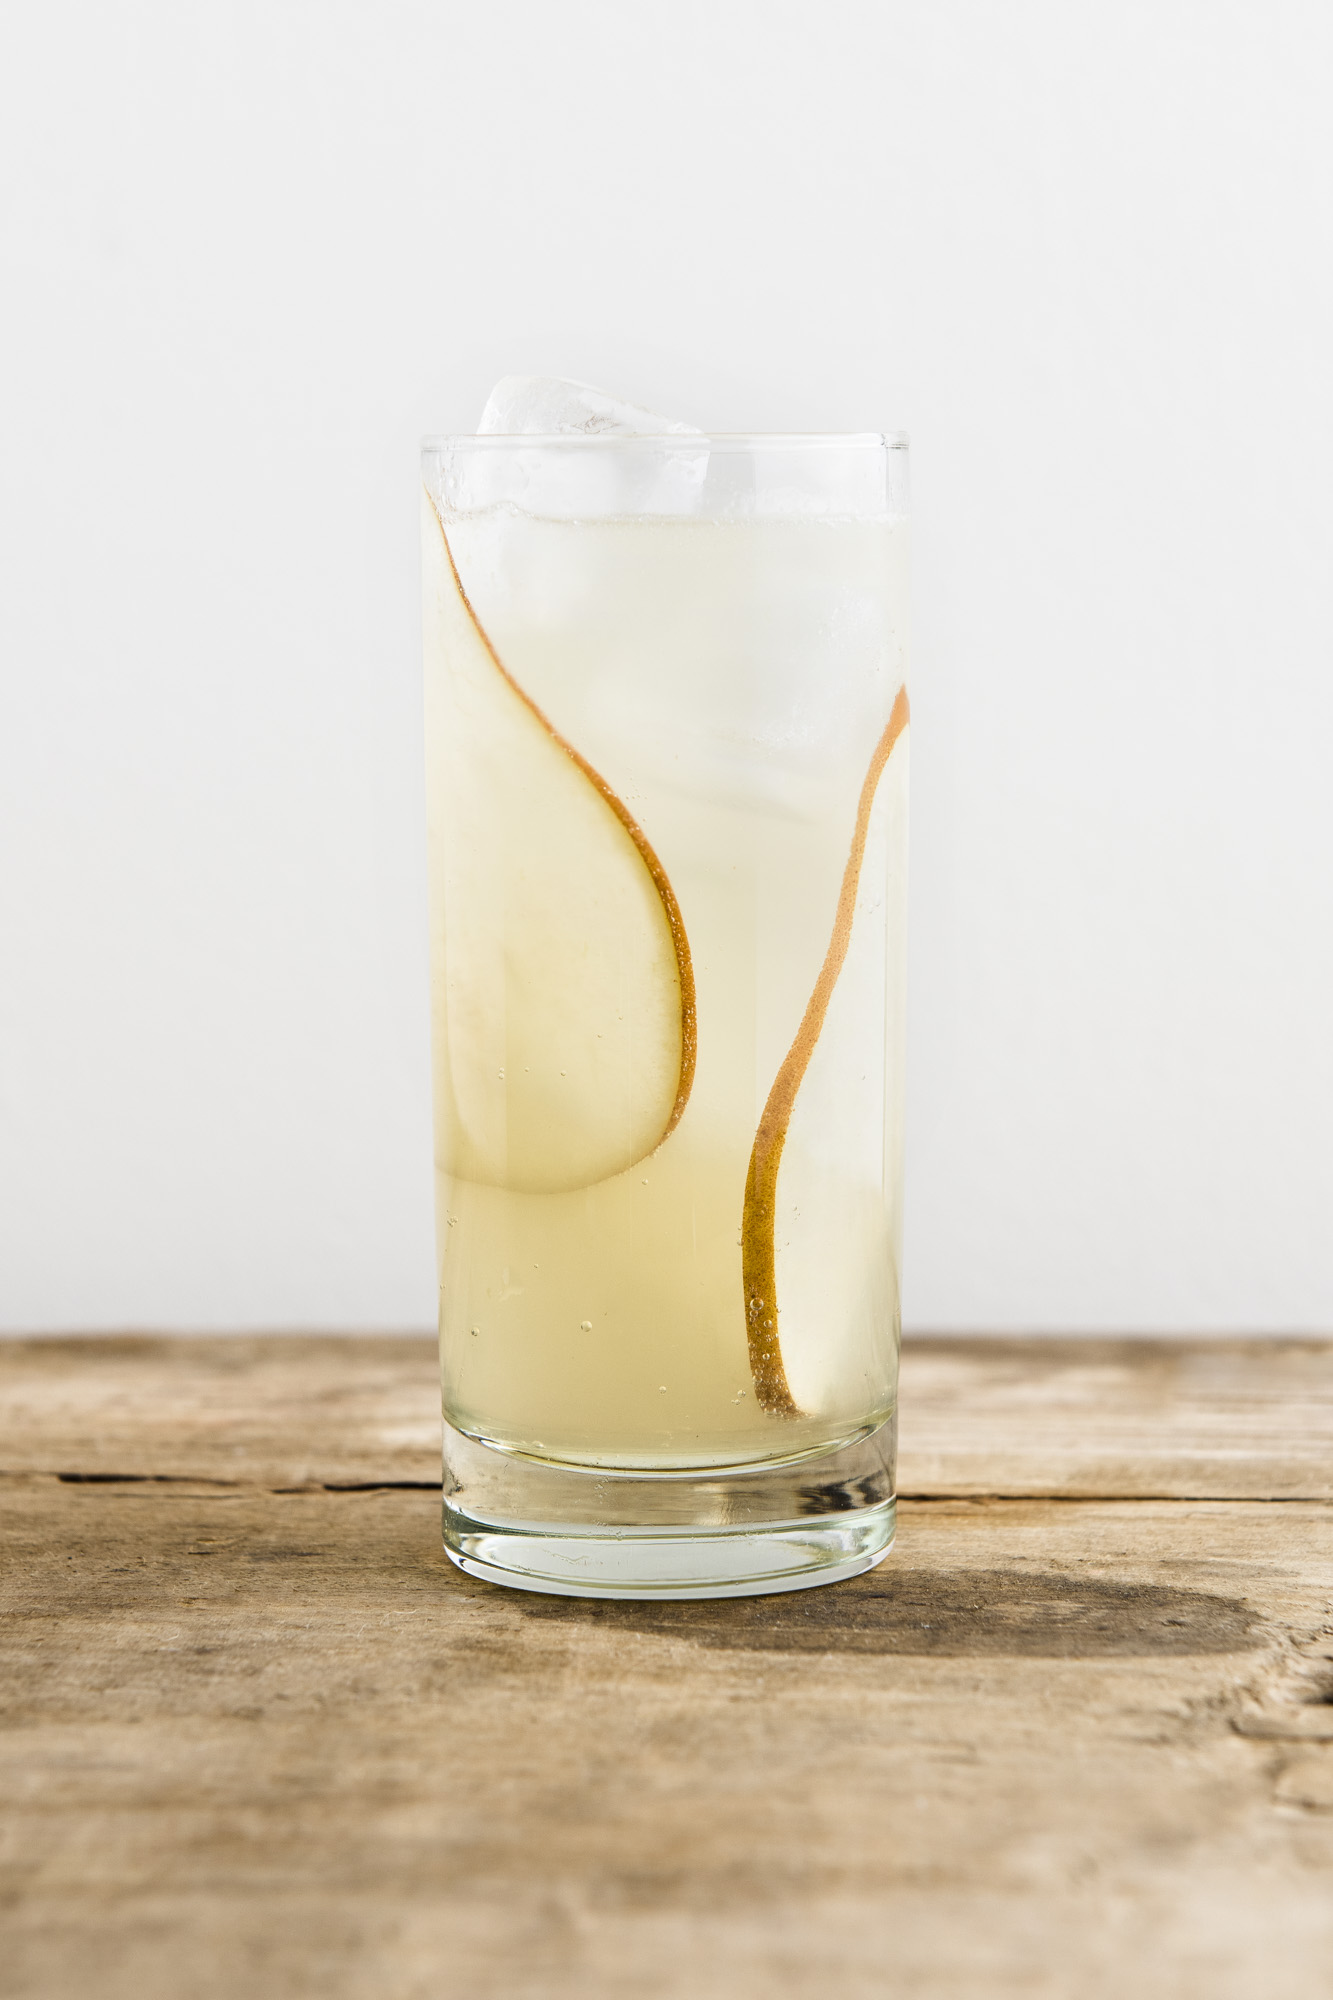 VIHUELA   1 1/2 oz Tequila  1/2 oz Chareau  3/4 oz Fresh Lime Juice  1/4 oz Honey Syrup  2 oz Ginger Beer  Add Chareau, tequila, lime juice, and honey to collins glass filled with ice. Top with Ginger Beer and garnish with sliced pears.